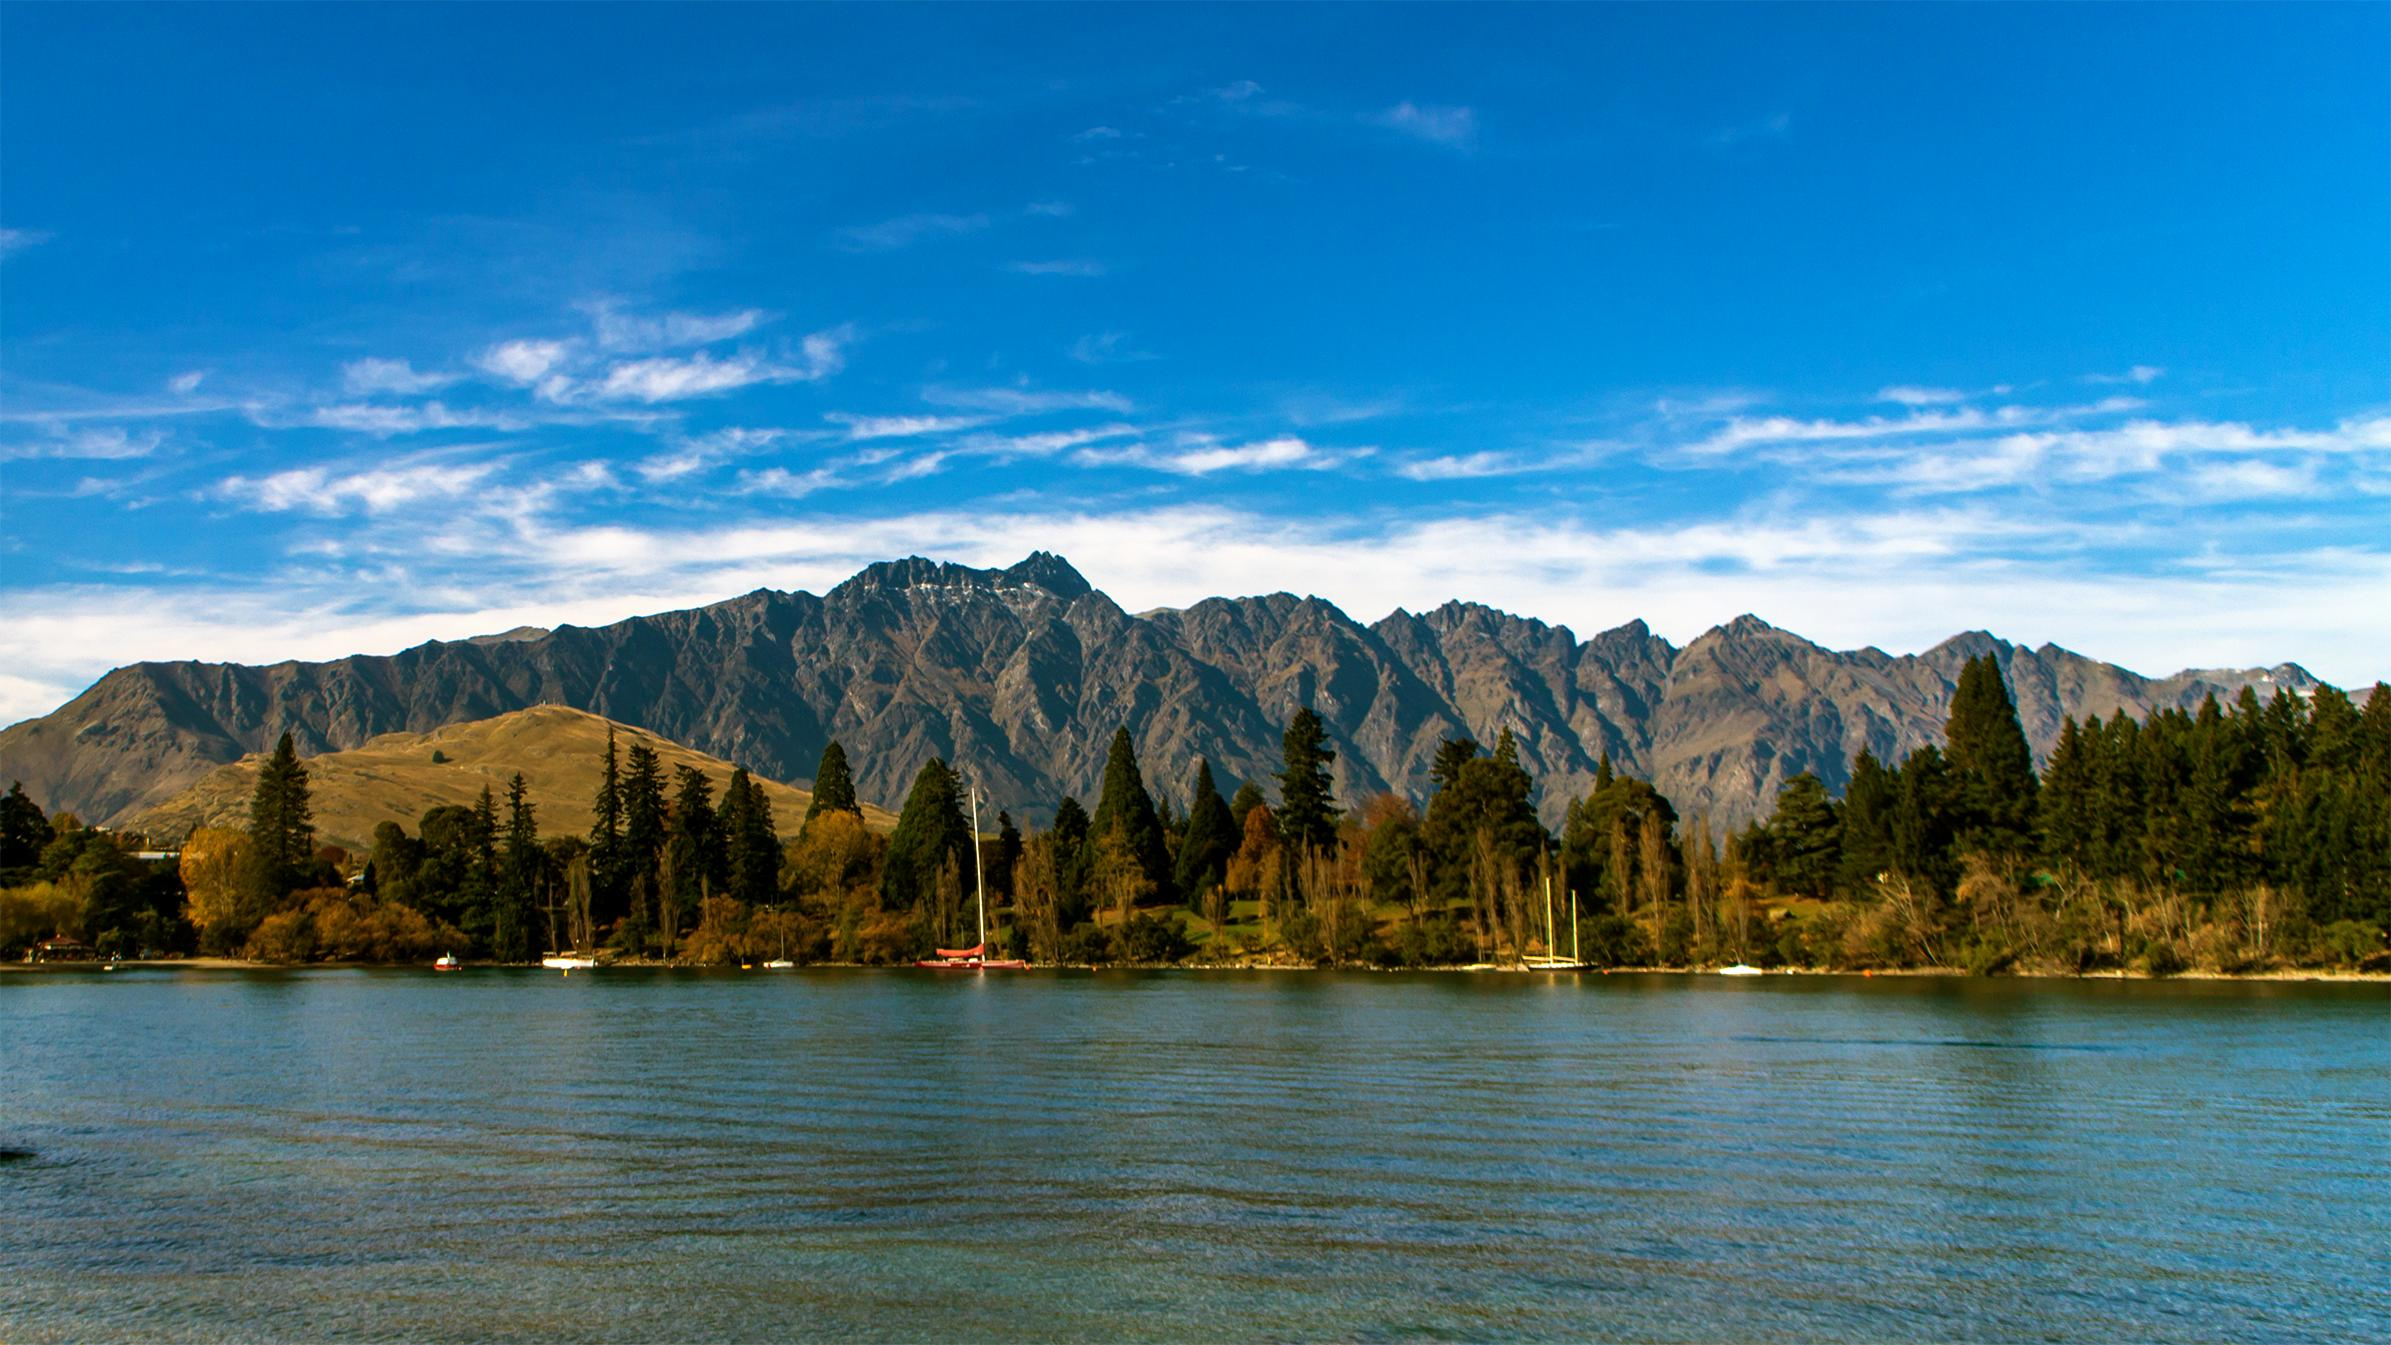 The Remarkables, with Lake Wakatipu in the foreground.